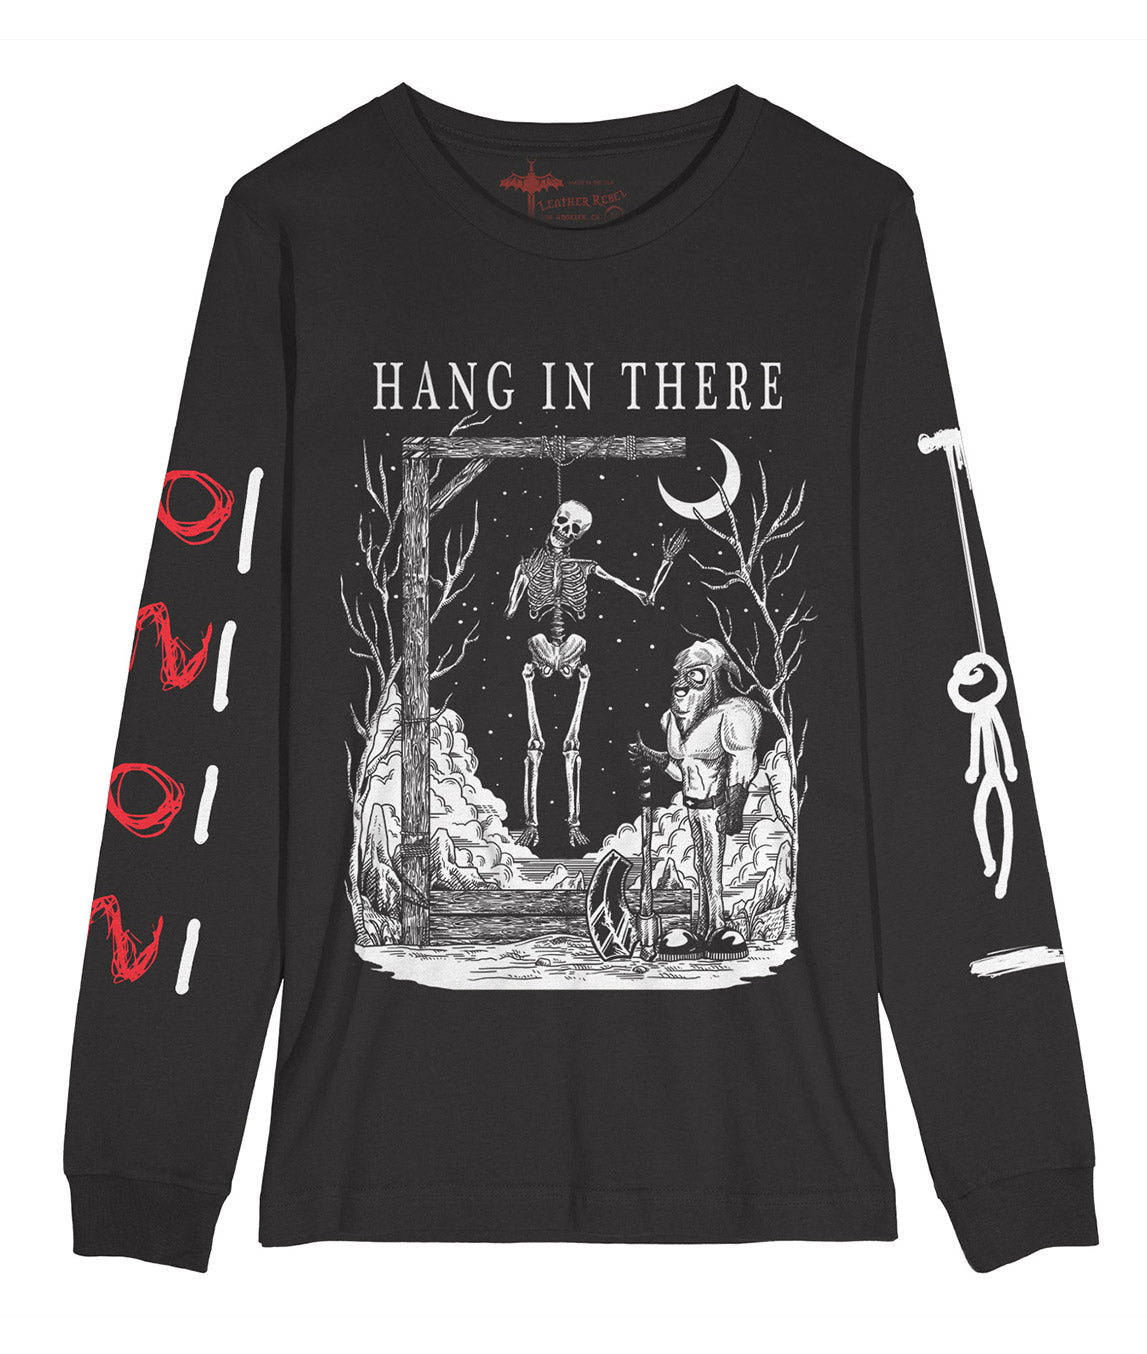 HANG IN THERE Long Sleeve Shirt (Dark Grey)